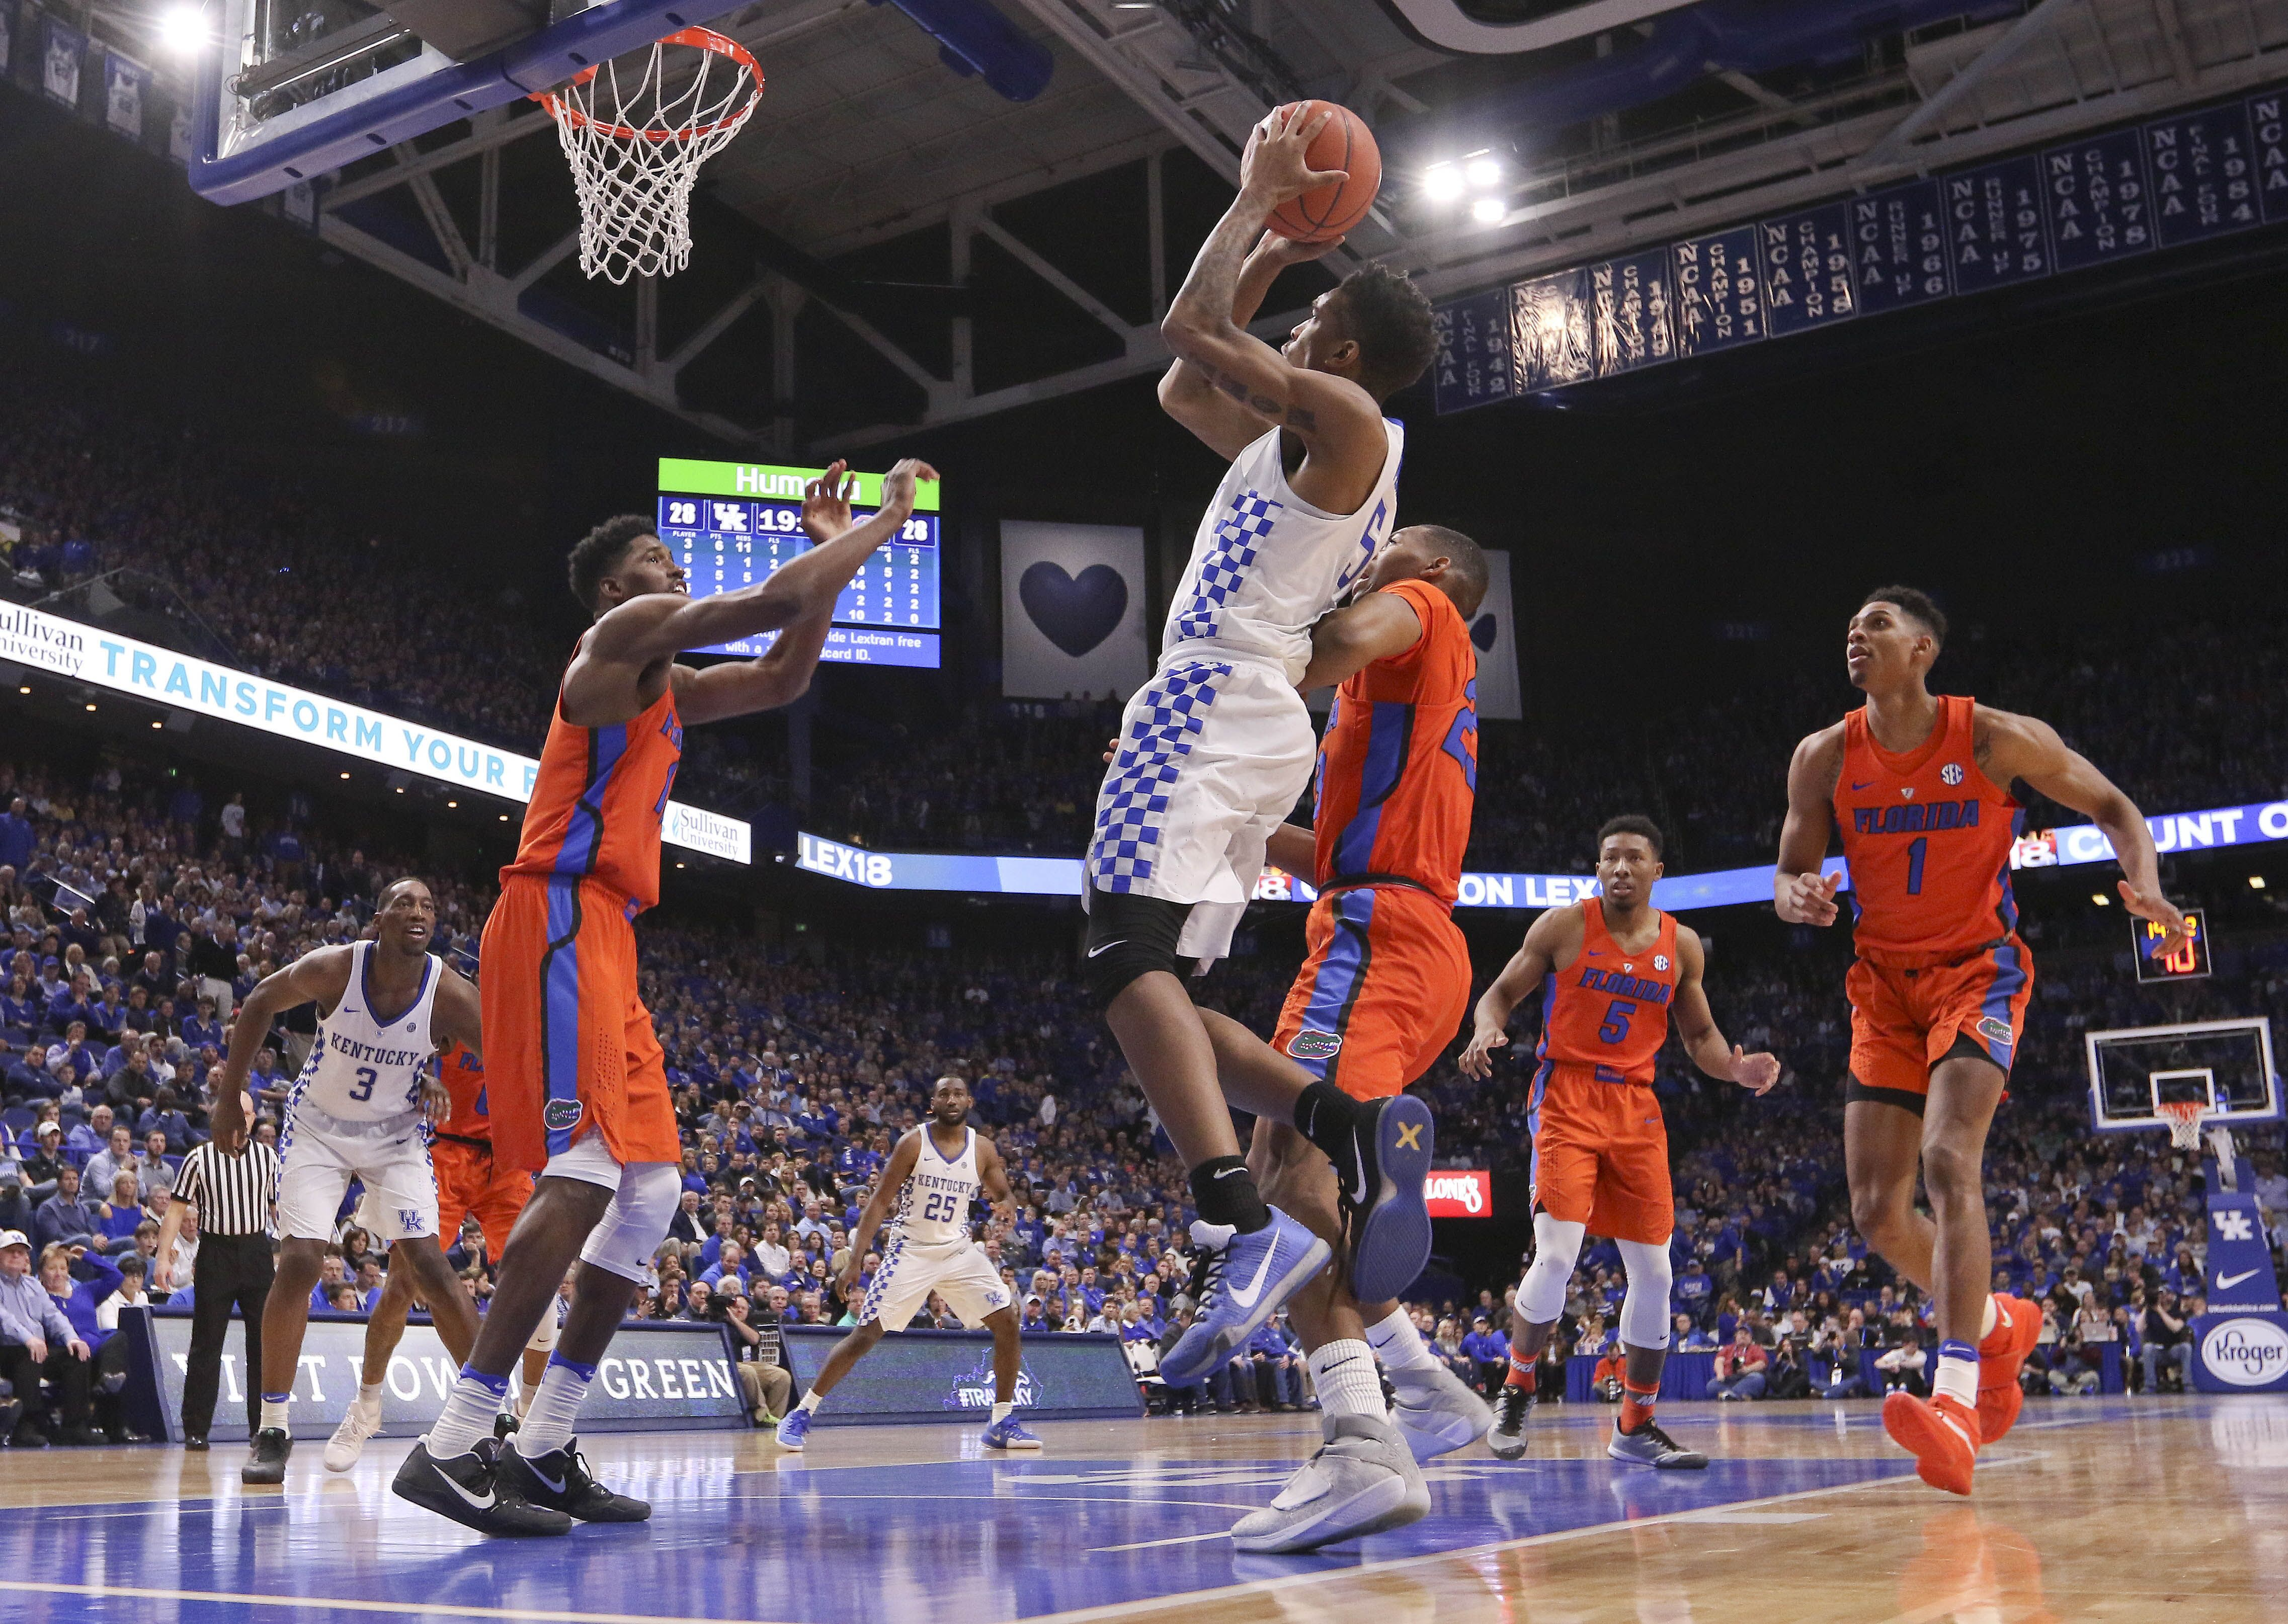 Kentucky Basketball What The Florida Win Means To The: Kentucky Basketball: Malik Monk, Bam Adebayo Leads